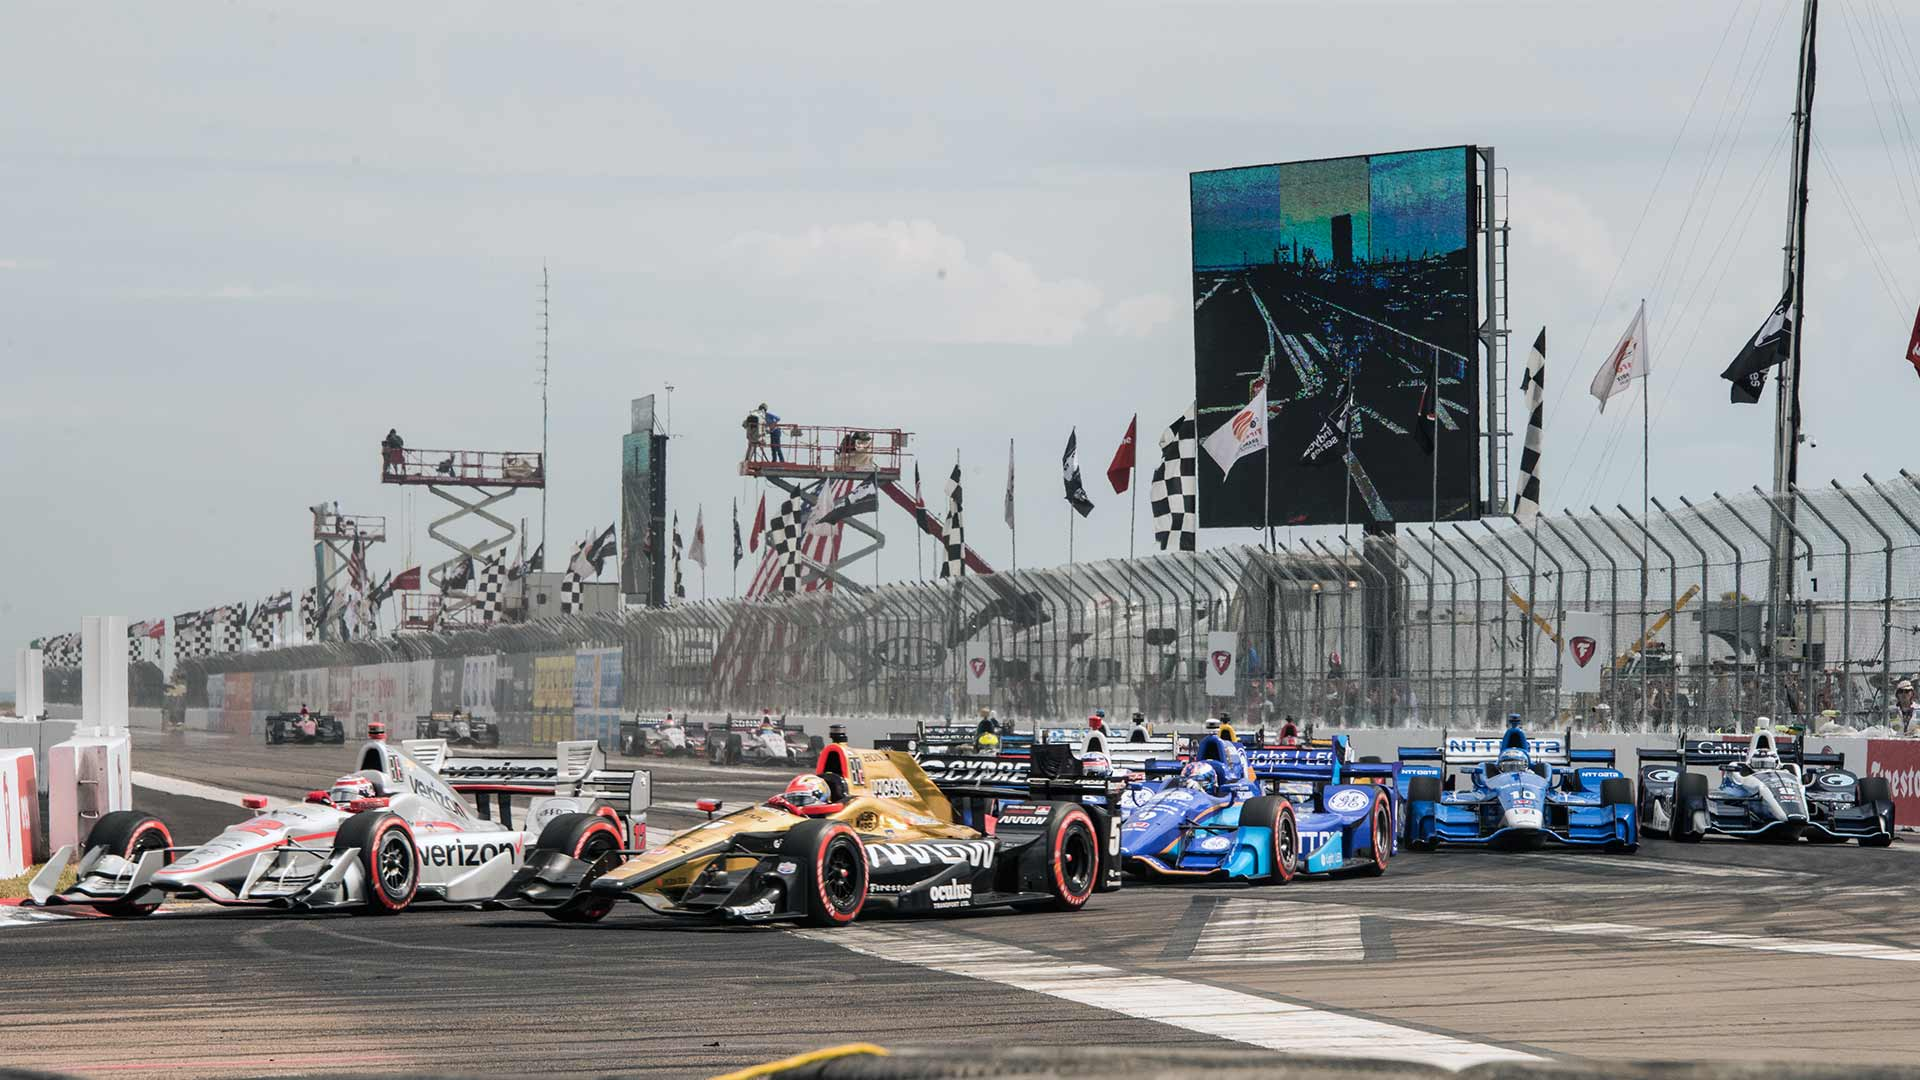 IndyCars speeding into turn 1 at the Firestone Grand Prix of St. Petersburg